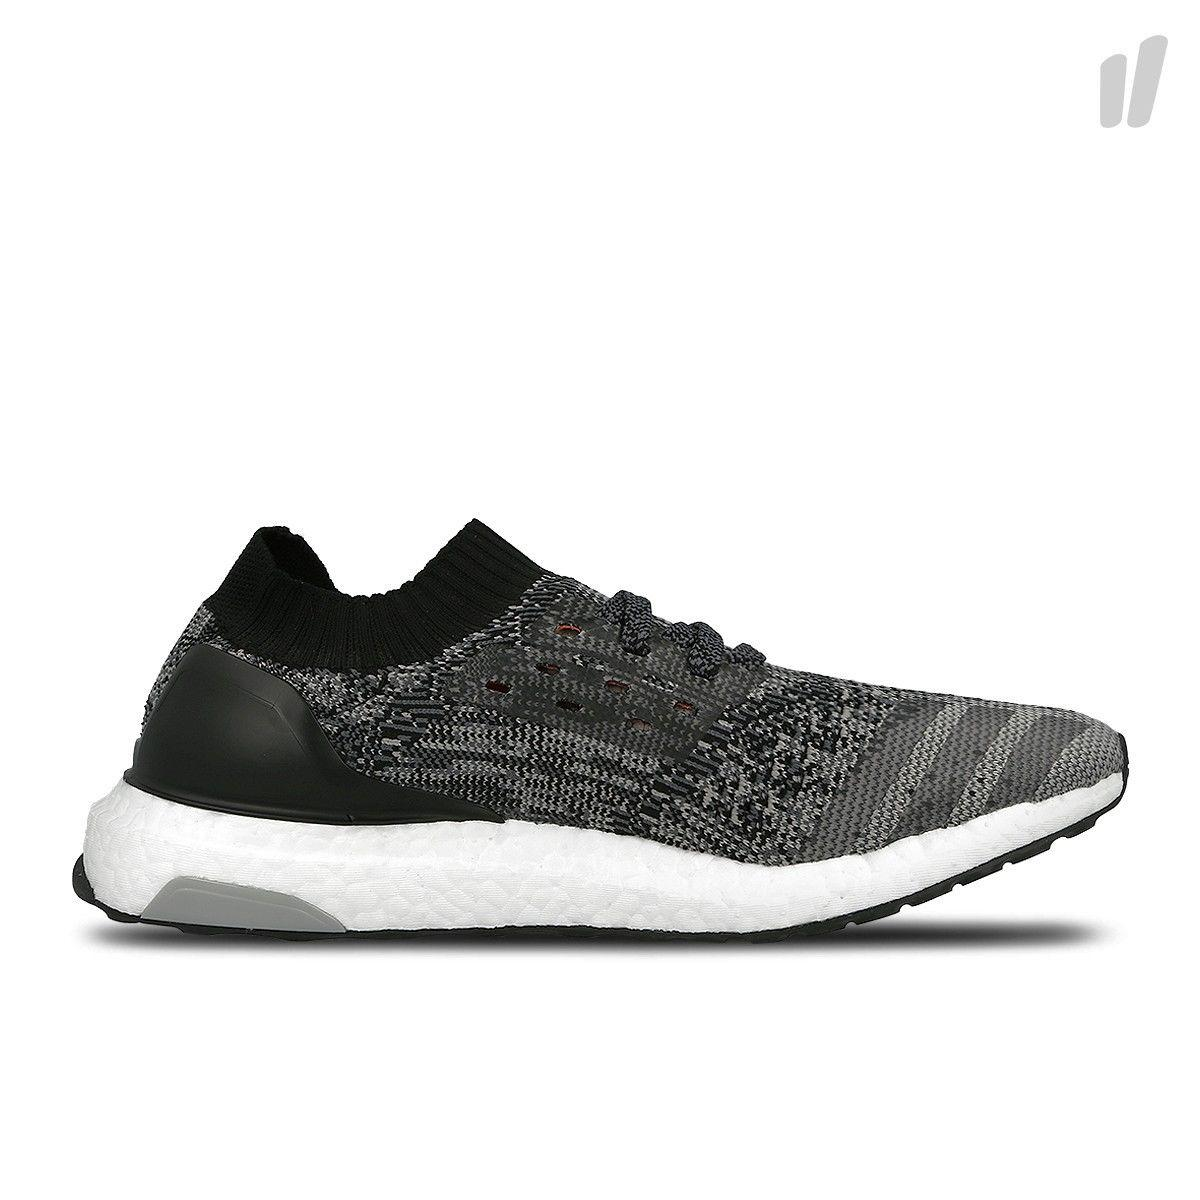 330f47abb07 Adidas Ultra Boost Uncaged Core Black Charcoal BB3900 From  JordanSneakersClub ultra boost uncaged bb3900 We are not responsible for  custom tax Or dellay at ...